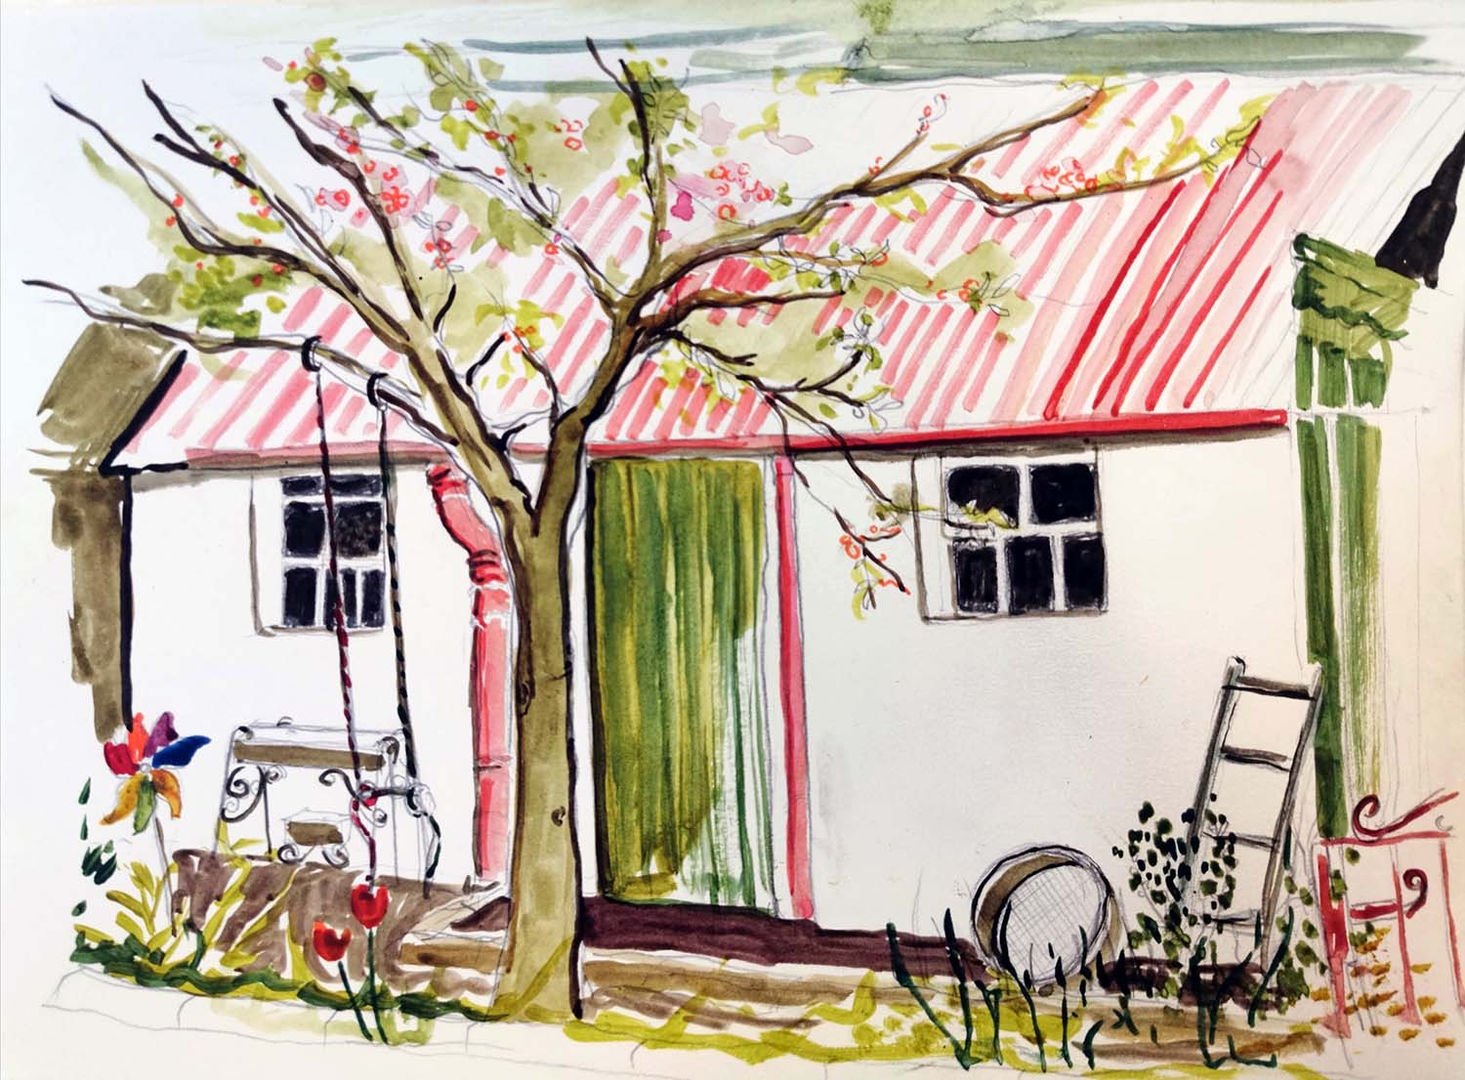 'Red Roof Fittie' Shelagh Swanson   Watercolour Sketch  30x20cm  £300